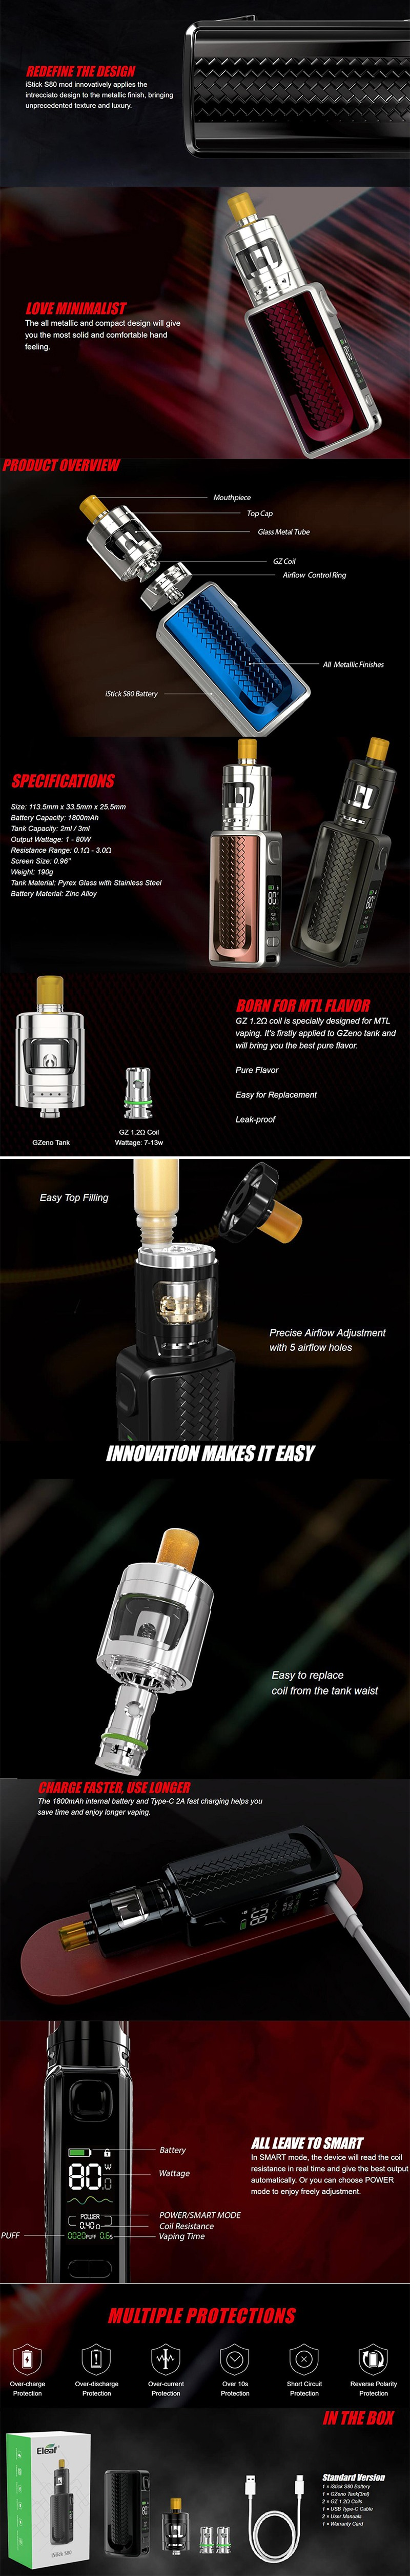 Eleaf iStick S80 80W Battery VW Box Mod + GZeno Tank Vape Kit